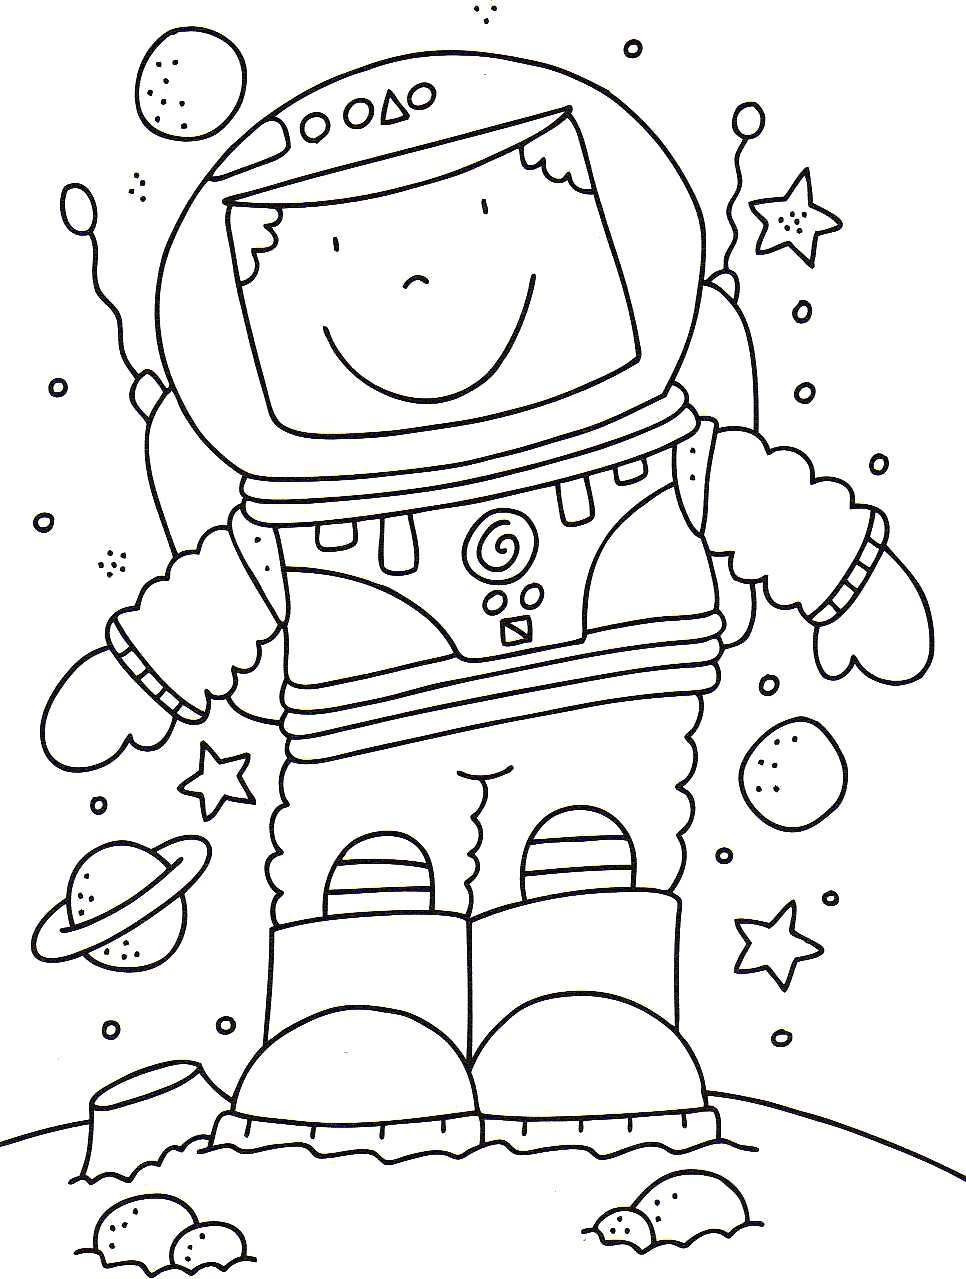 Astronaut Coloring Pages By Aaliyah Free Printables